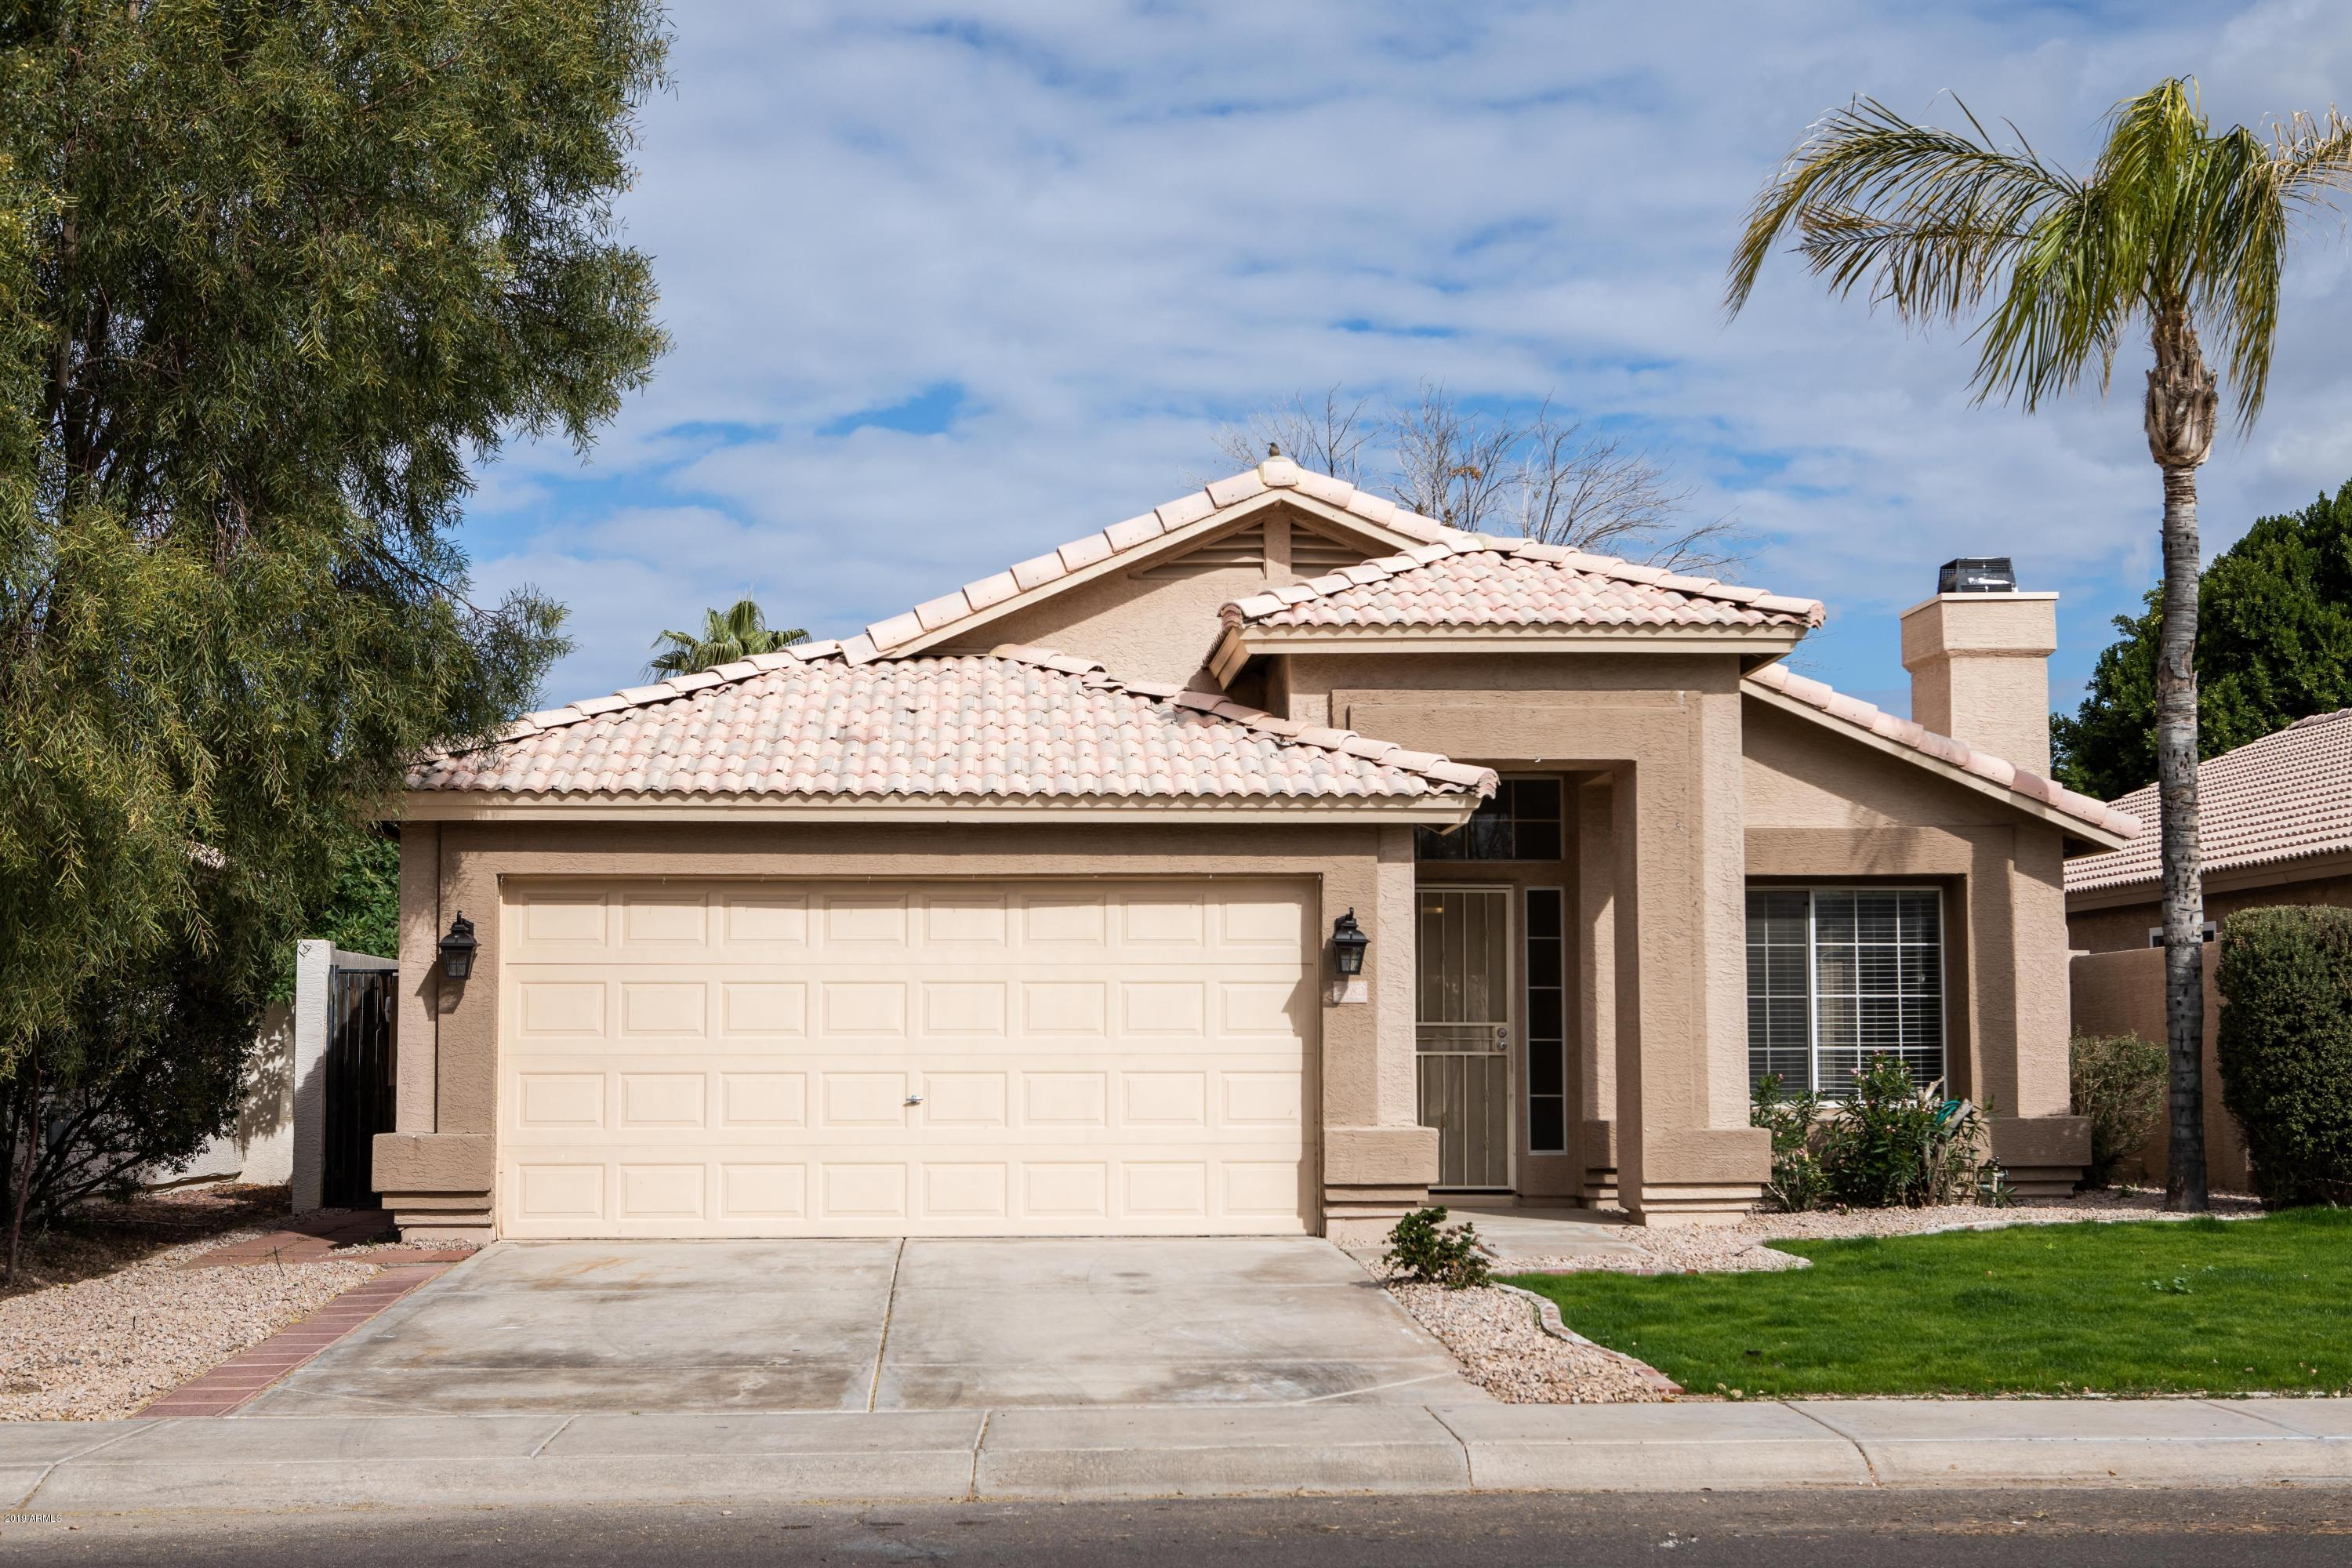 Photo of 5182 W Buffalo Street, Chandler, AZ 85226